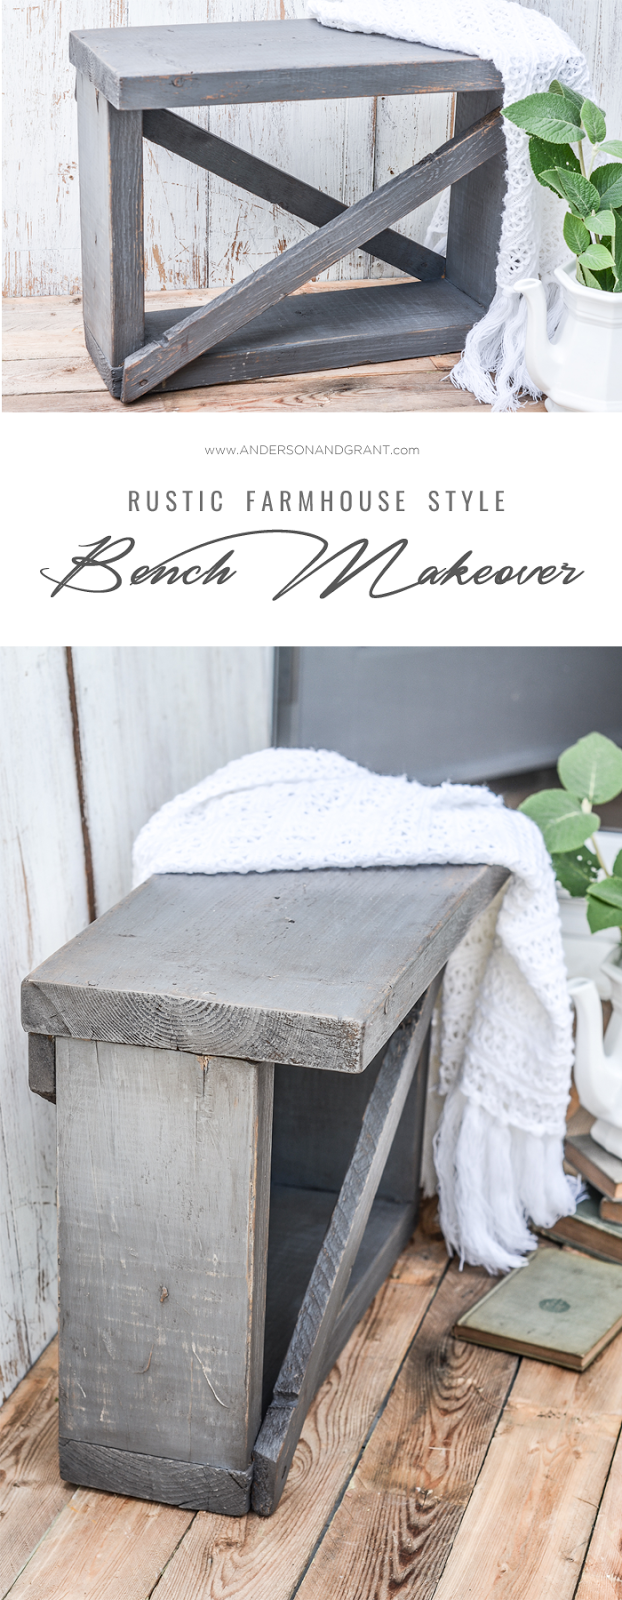 A basic scrap wood bench is given a farmhouse style makeover #DIY #DIYfurniture #paintedfurniture #farmhousemakeover